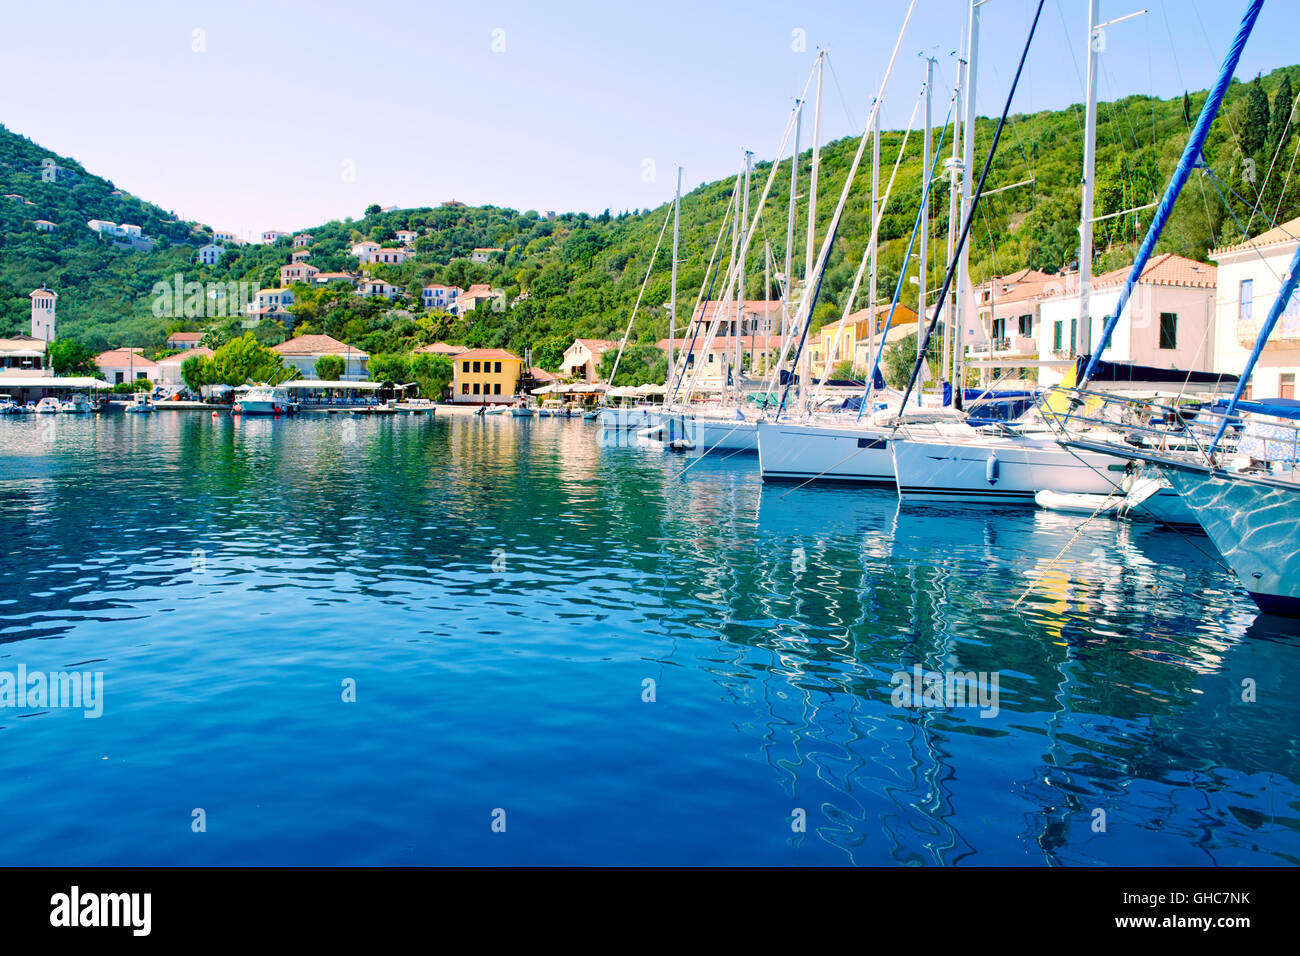 Kioni port at Ithaca Ionian islands Greece - Stock Image